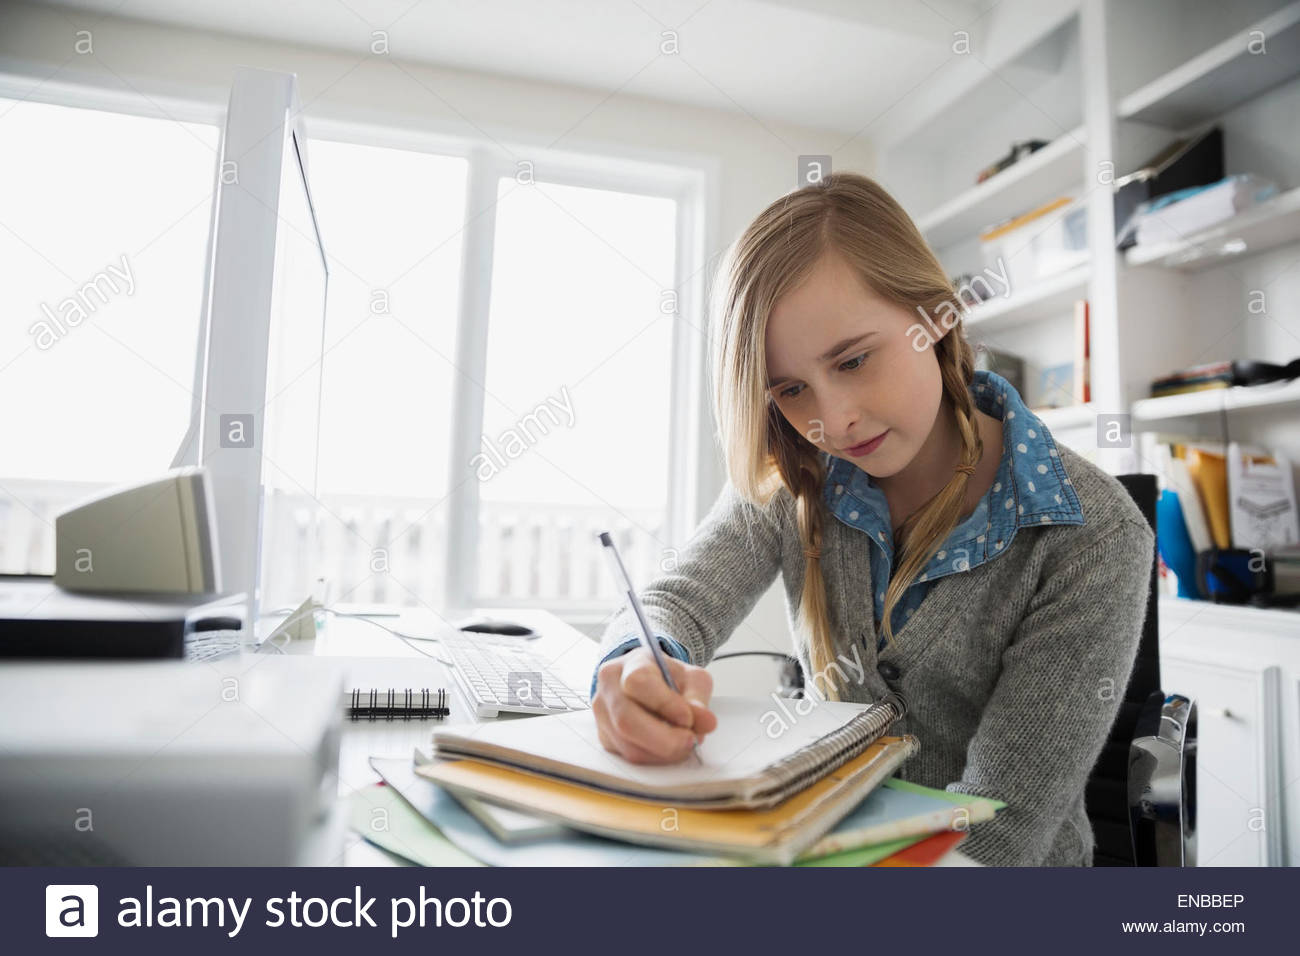 Girl doing homework in home office - Stock Image